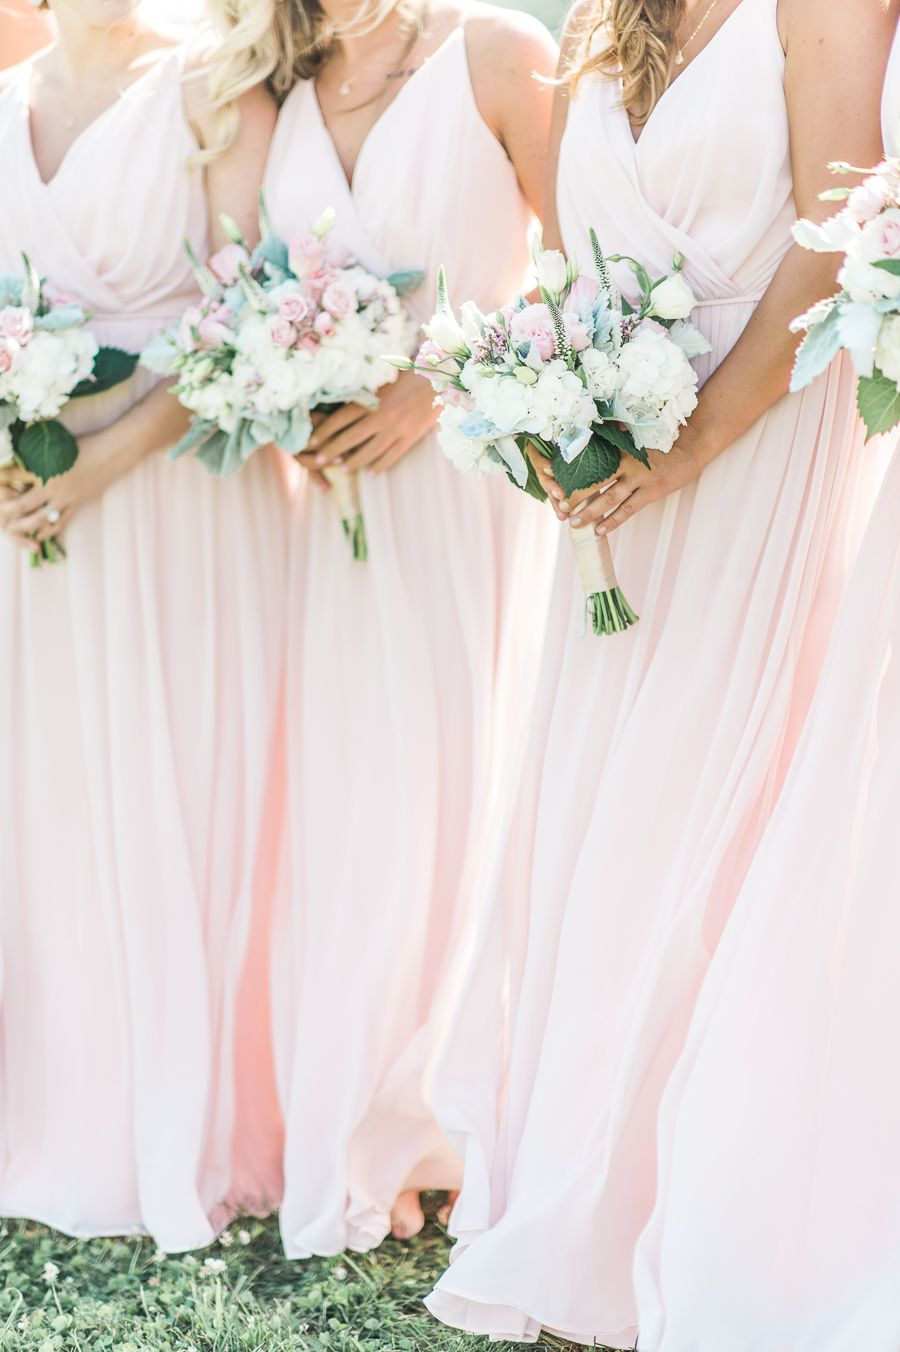 Super Elegant And Dreamy Natural Blush Outdoor Vineyard Wedding Blush Pink Bridesmaid Dresses Pink Bridesmaid Dresses Long Blush Bridesmaid Dresses Long